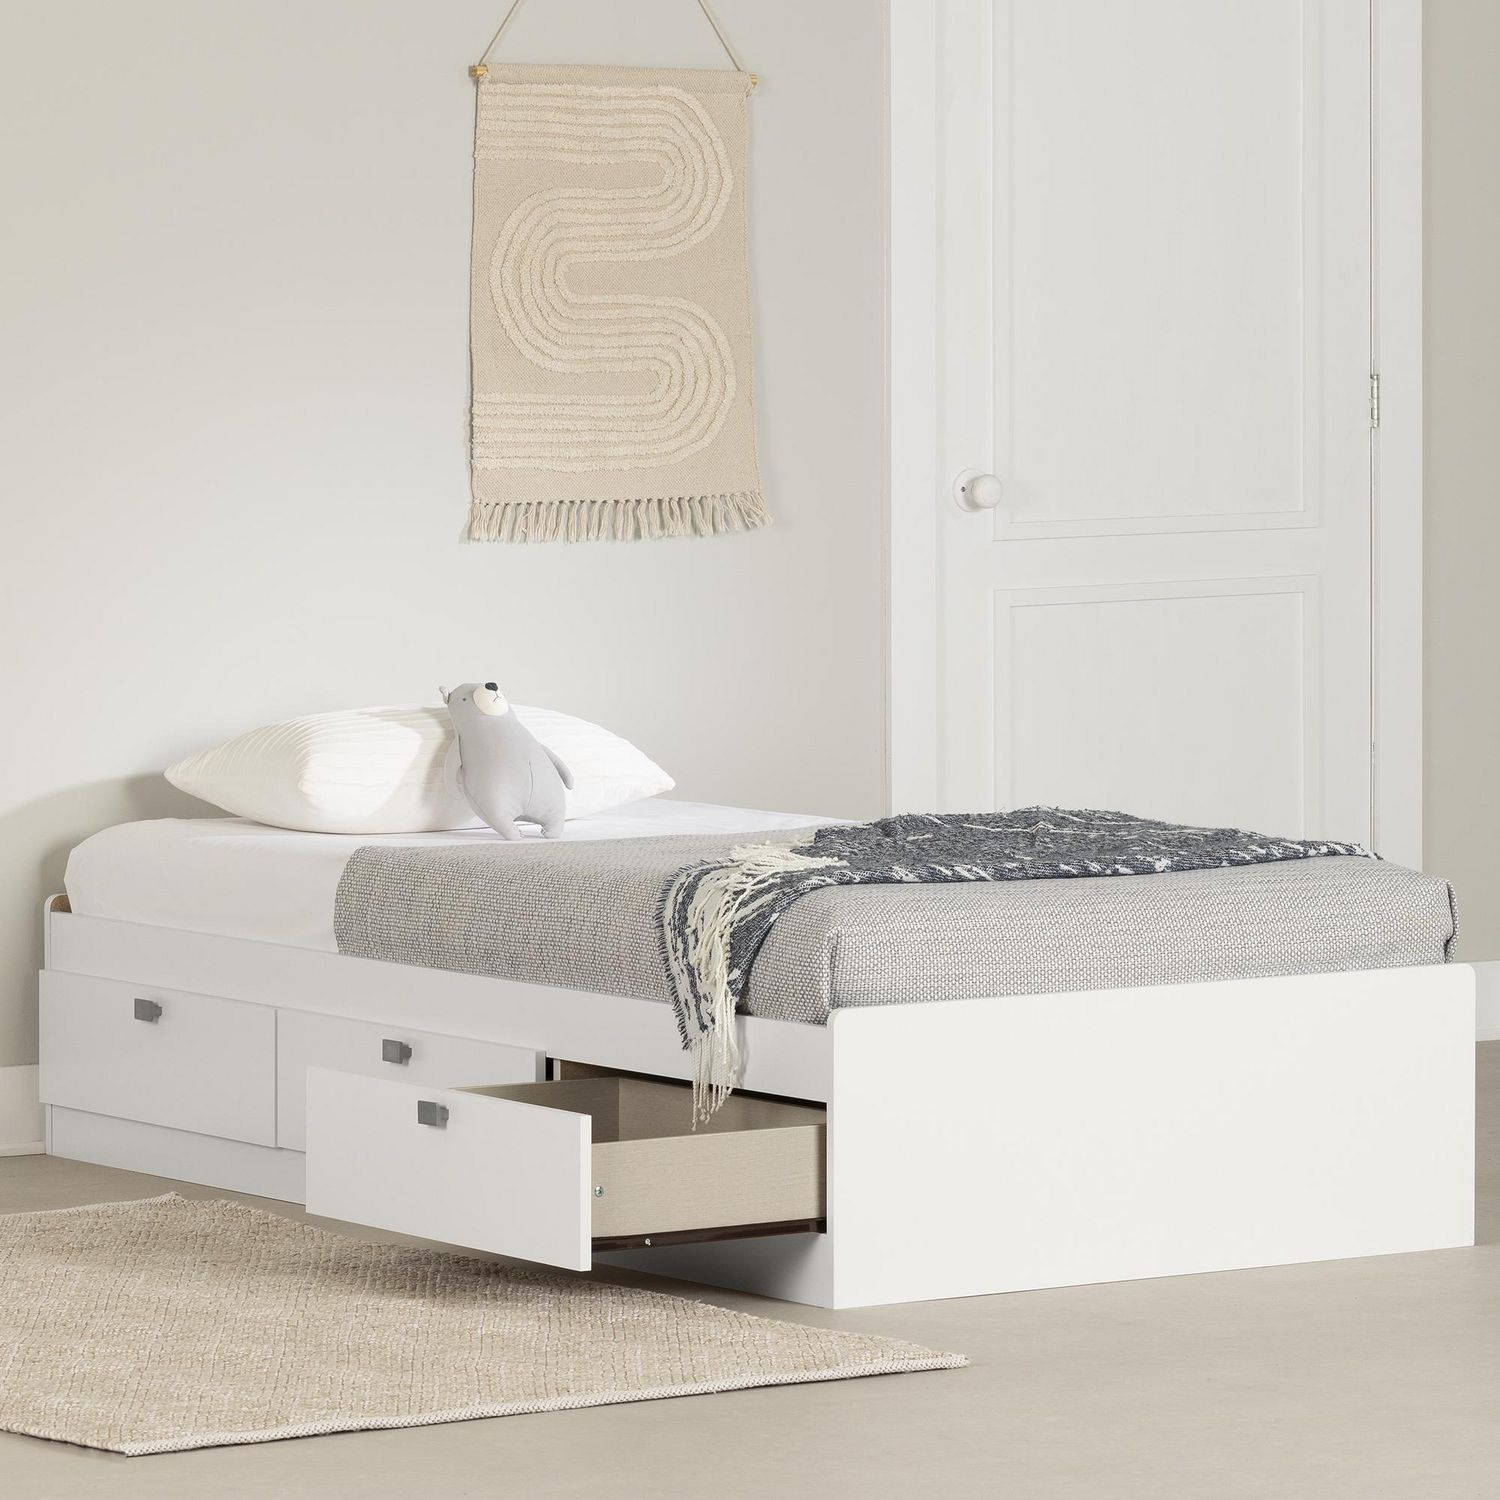 twin bed twinbedfoundation mattress foundation com coolgel with sofa